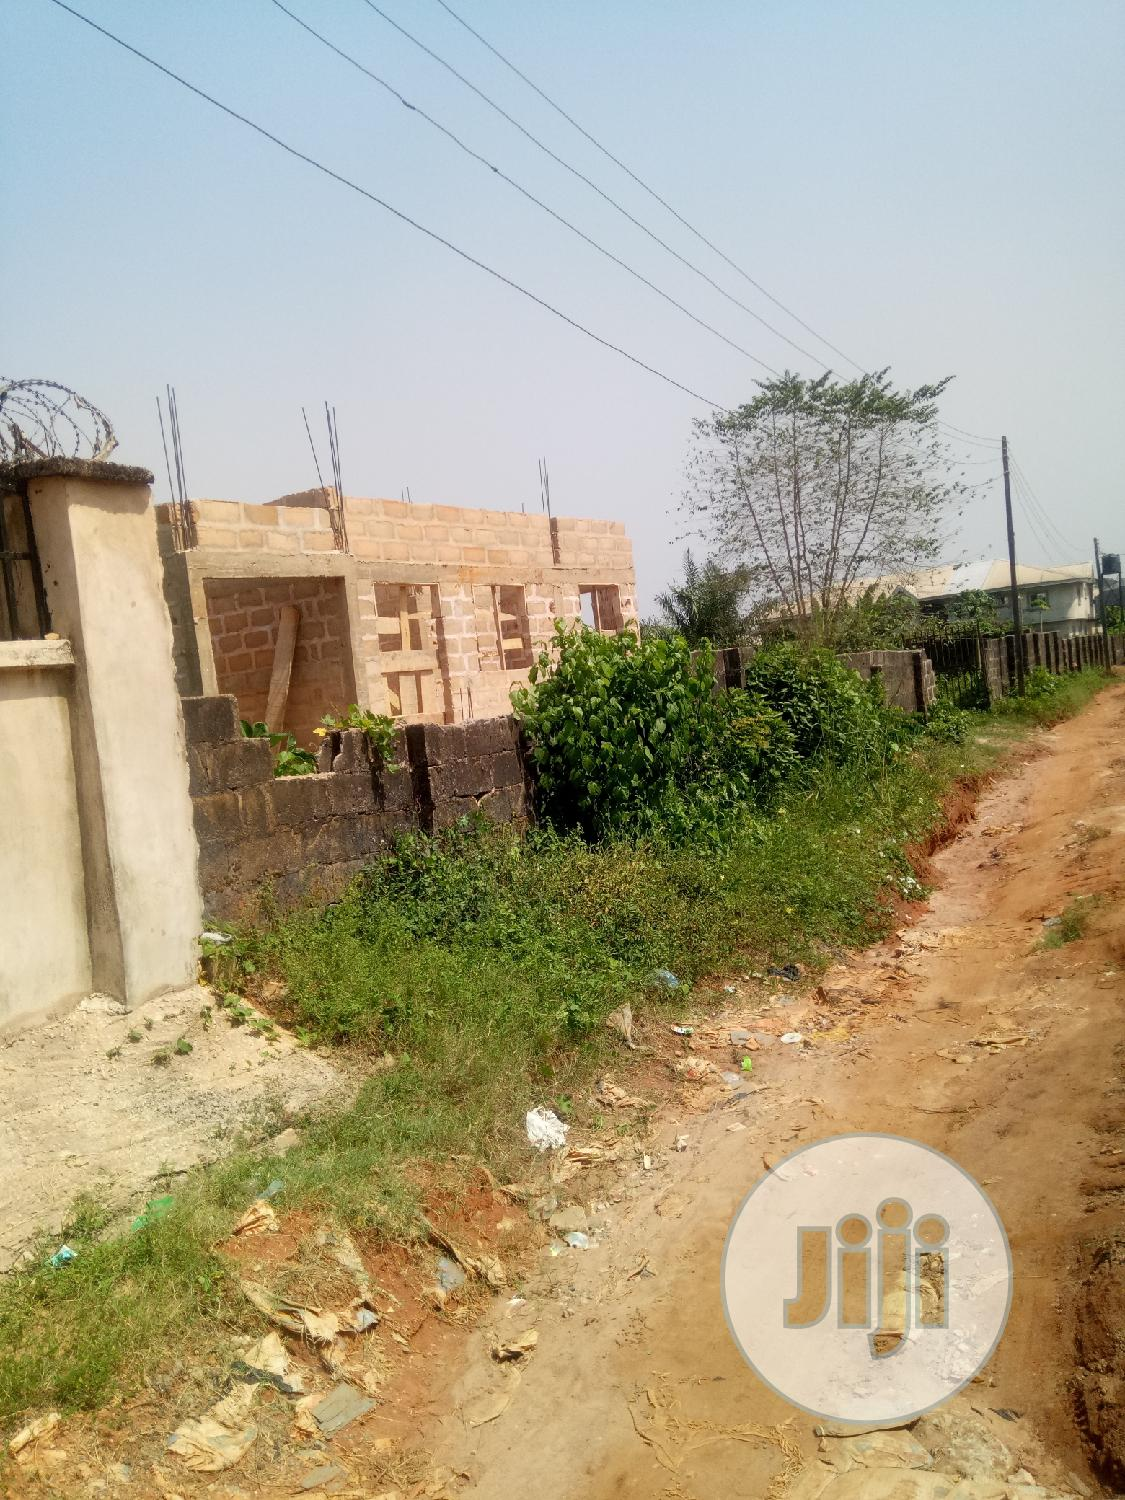 Genuine Plot of Land Measuring 100X100FT With Standard Fence for Sale | Land & Plots For Sale for sale in Benin City, Edo State, Nigeria